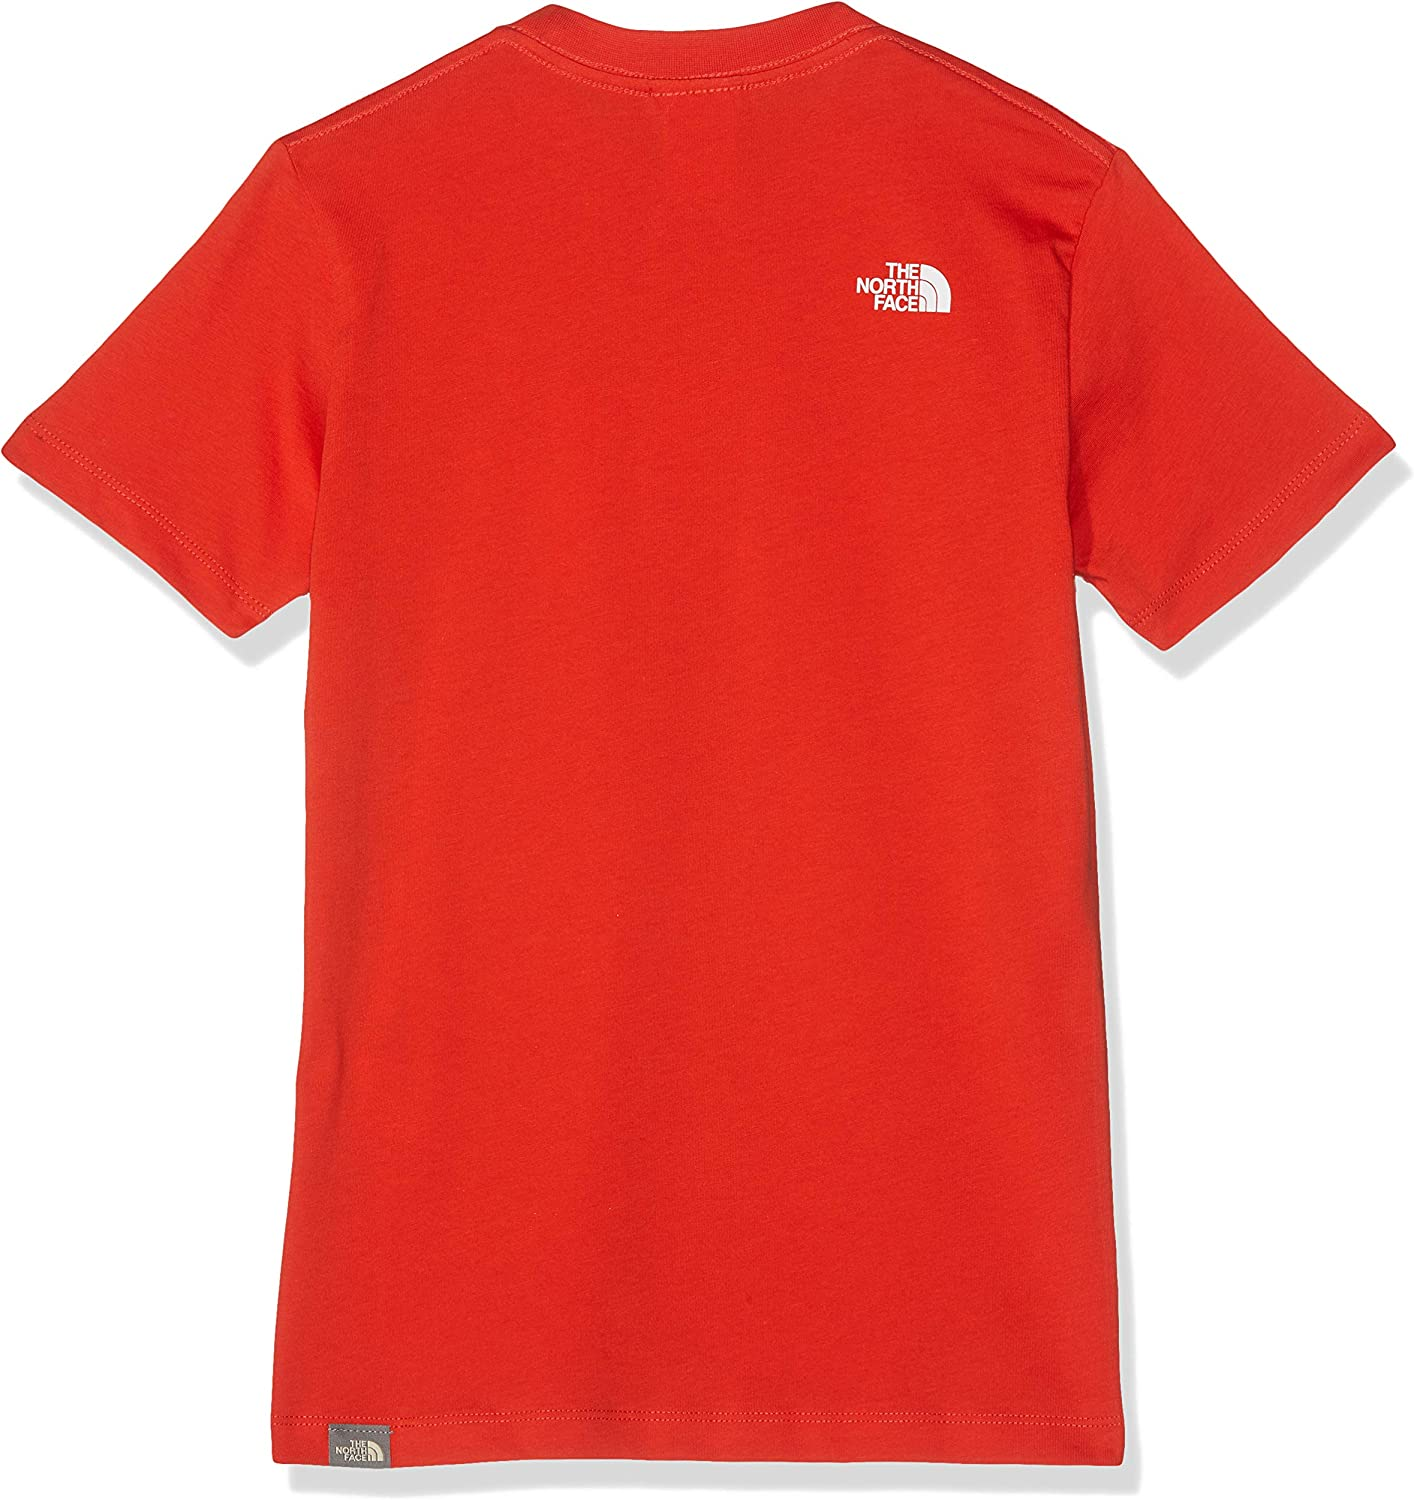 Maglietta Unisex Bambini L Fiery Red//TNF White Rosso The North Face Easy Tee